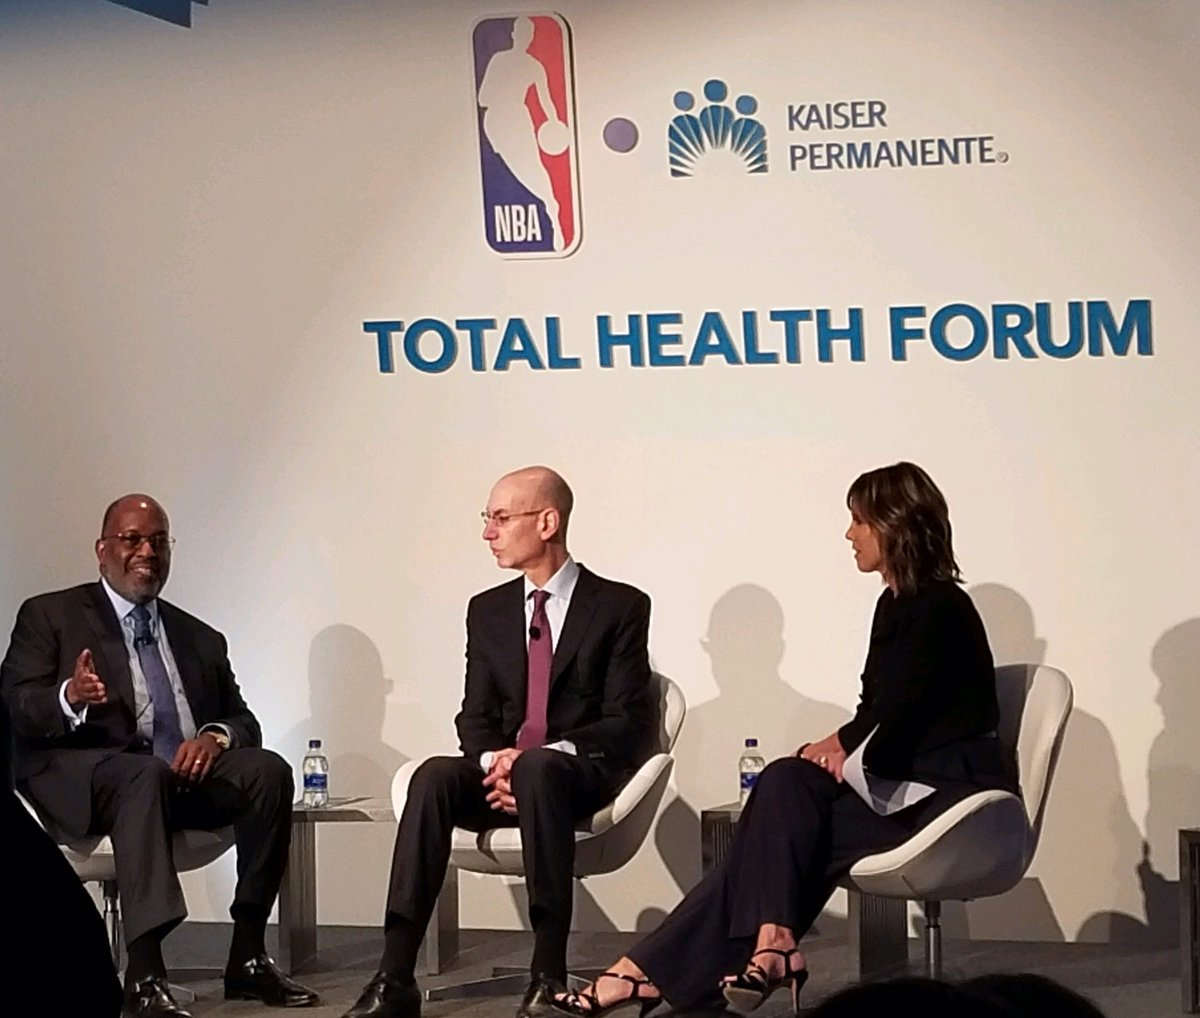 .@BernardJTyson and @NBAAdamSilver sit down for an intimate conversation with @HannahStormESPN to talk through the roles leaders and organizations have in building healthier generations and destigmatizing mental health #TotalHealthForum #resilience